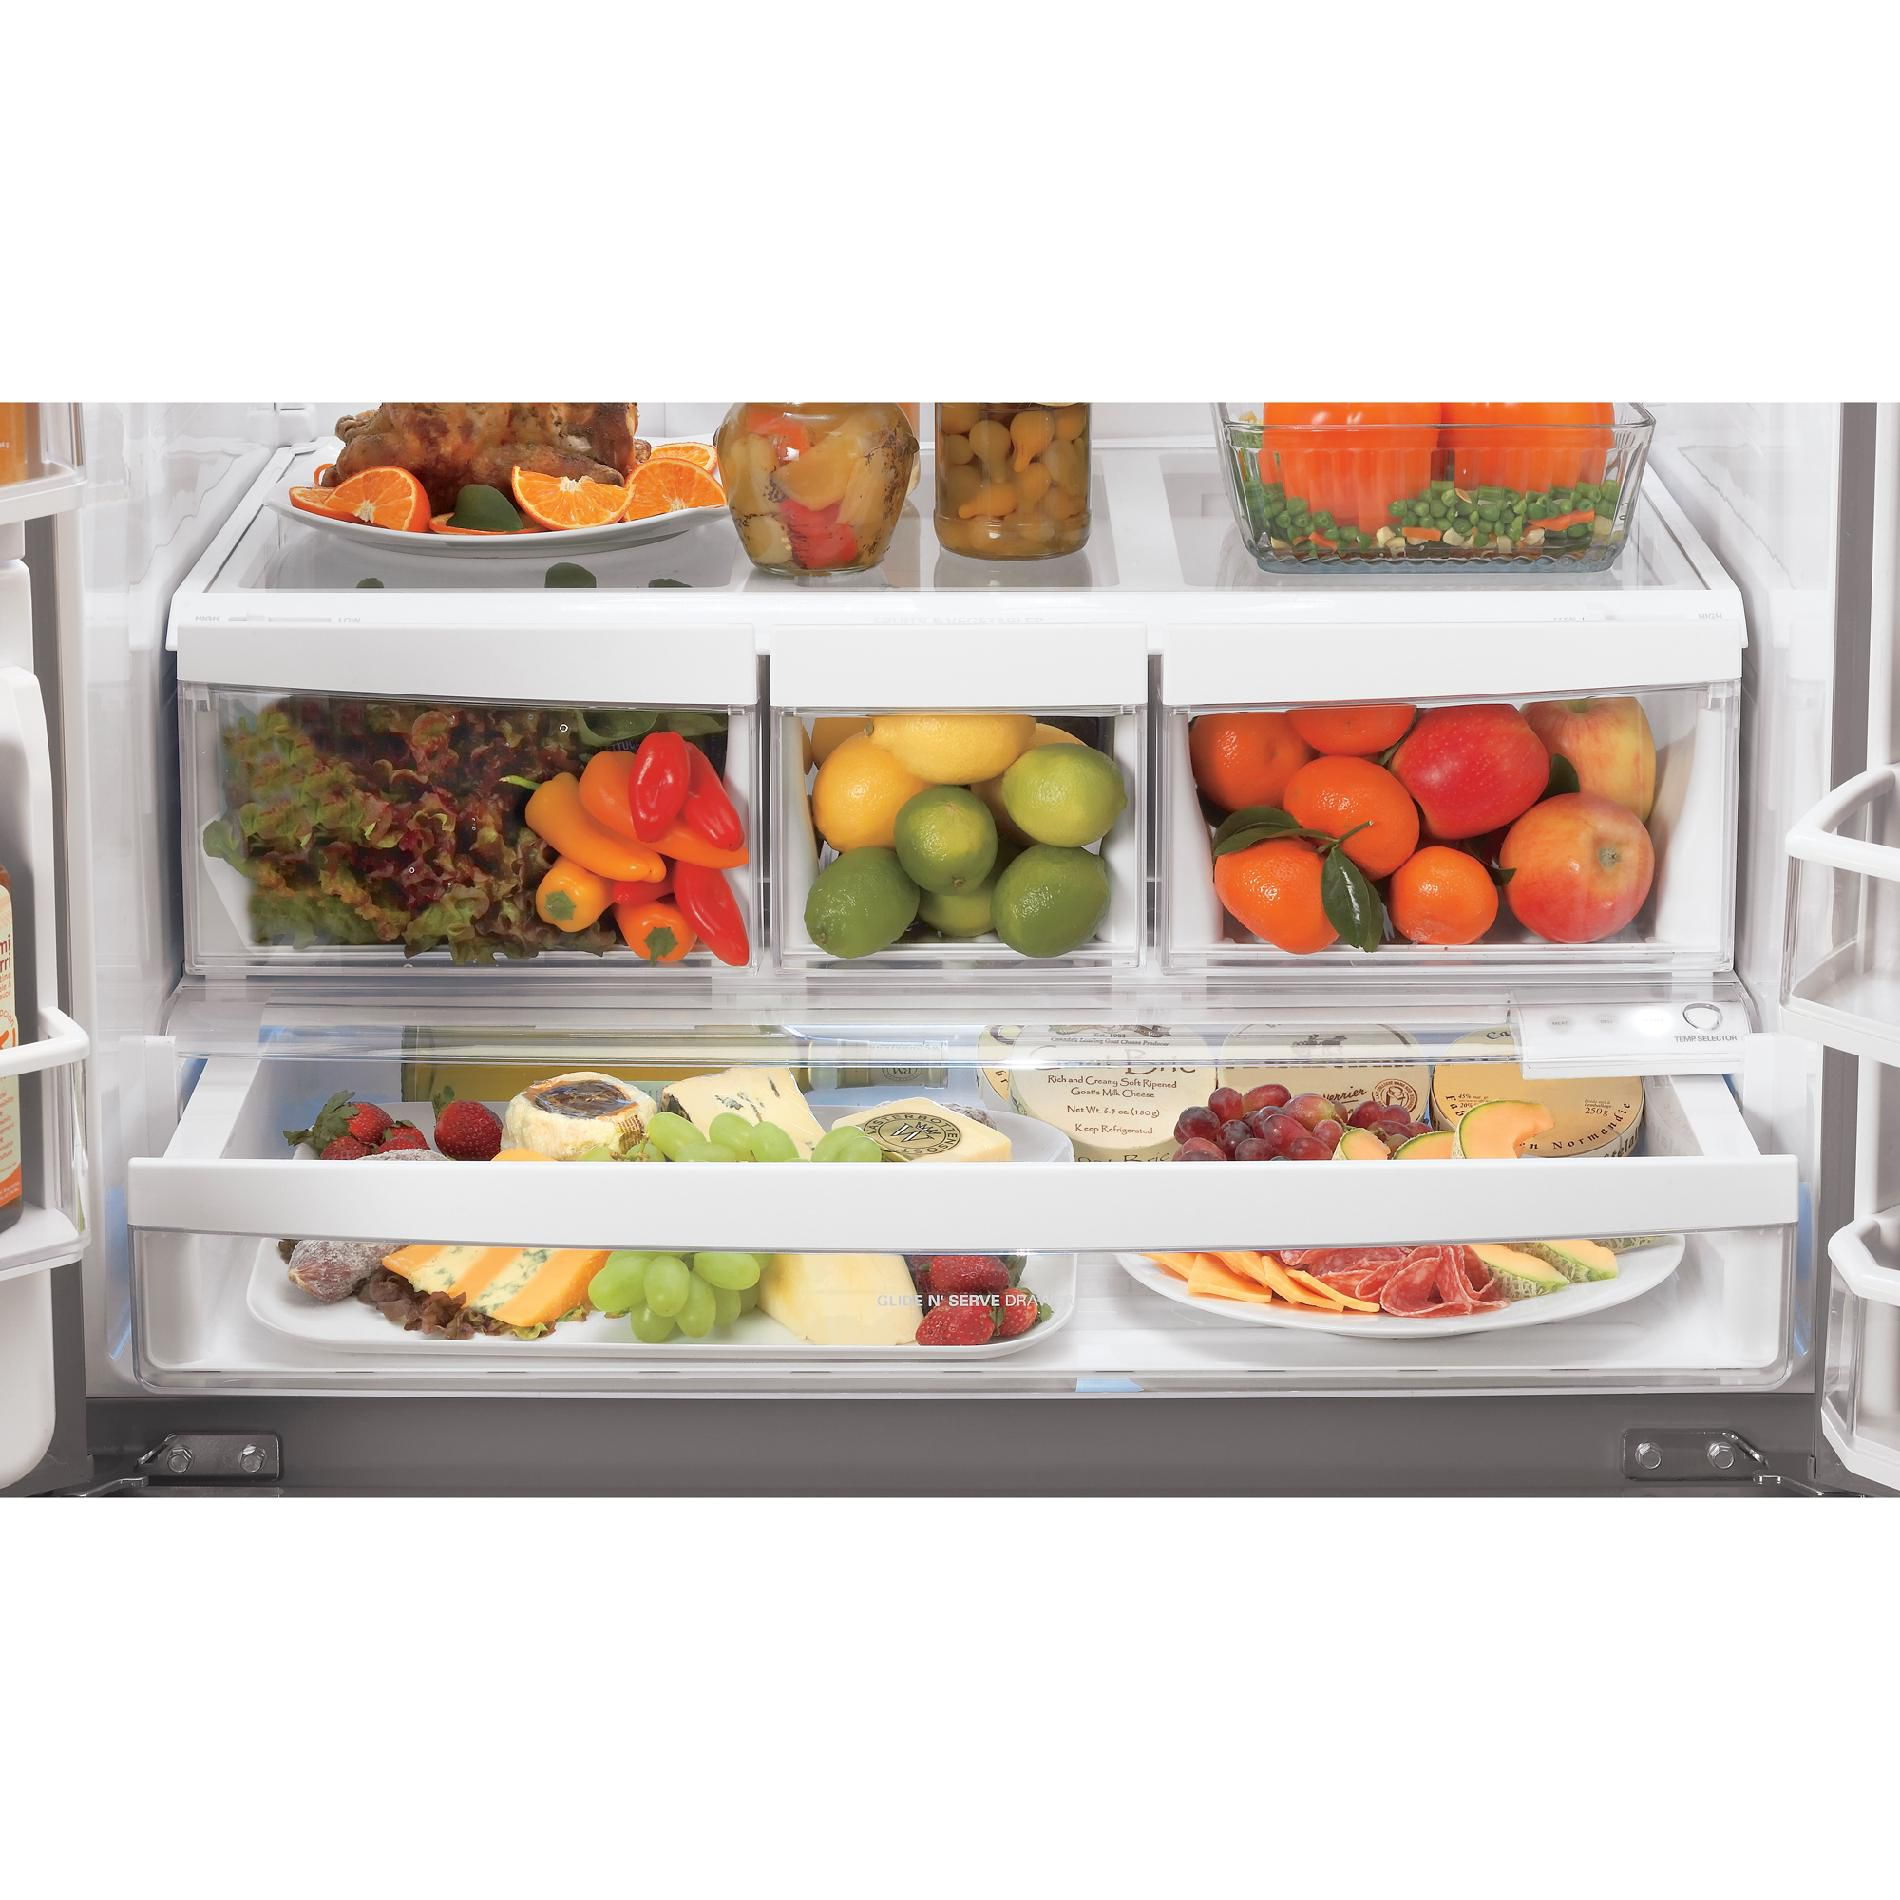 LG 27.6 cu. ft.  French Door Bottom-Freezer Refrigerator w/ Smart Cooling & Dual Ice Makers - Black